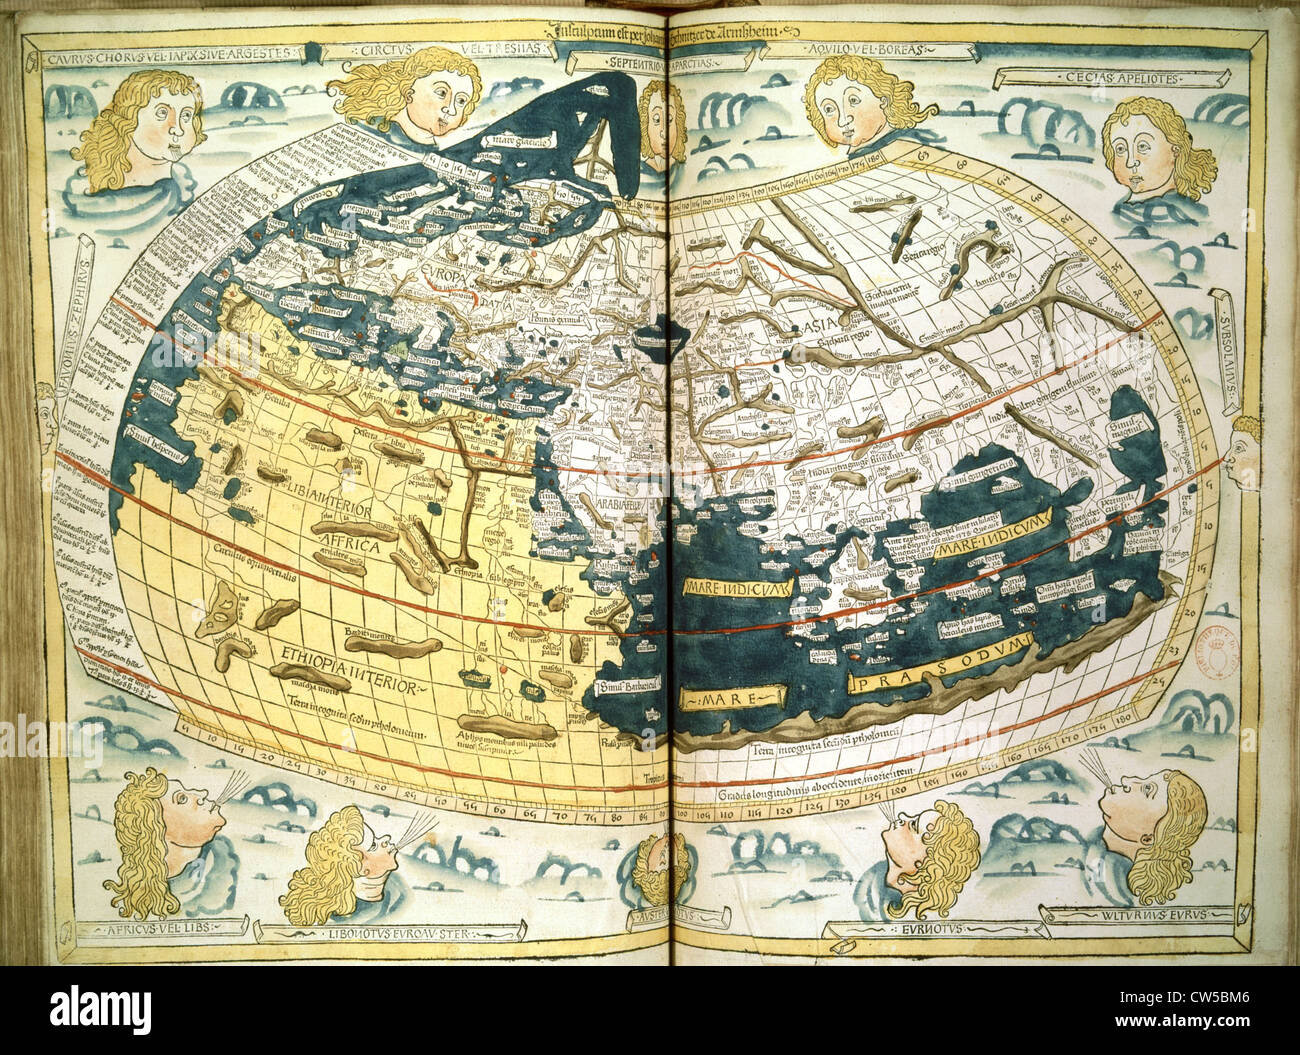 Ptolemaios, 'Geography', 1482 - Stock Image